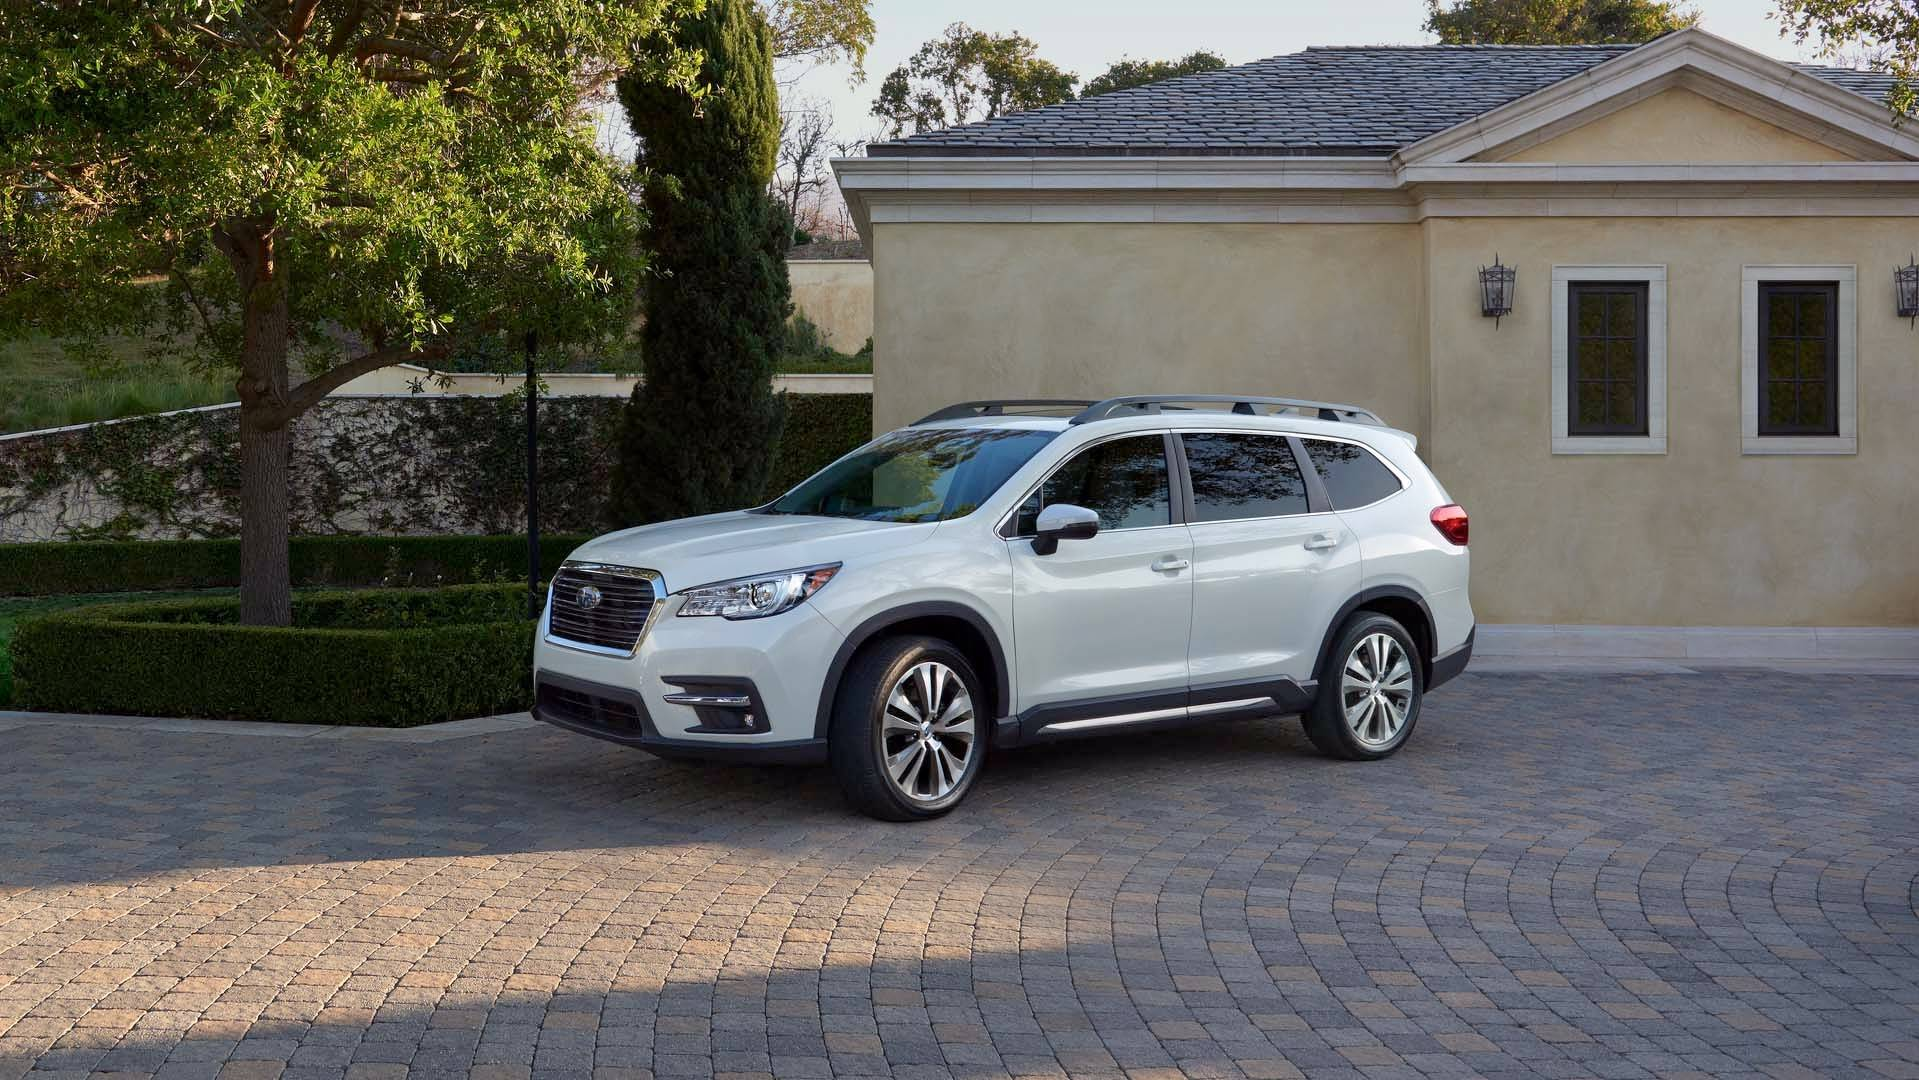 2019_Subaru_Ascent_14